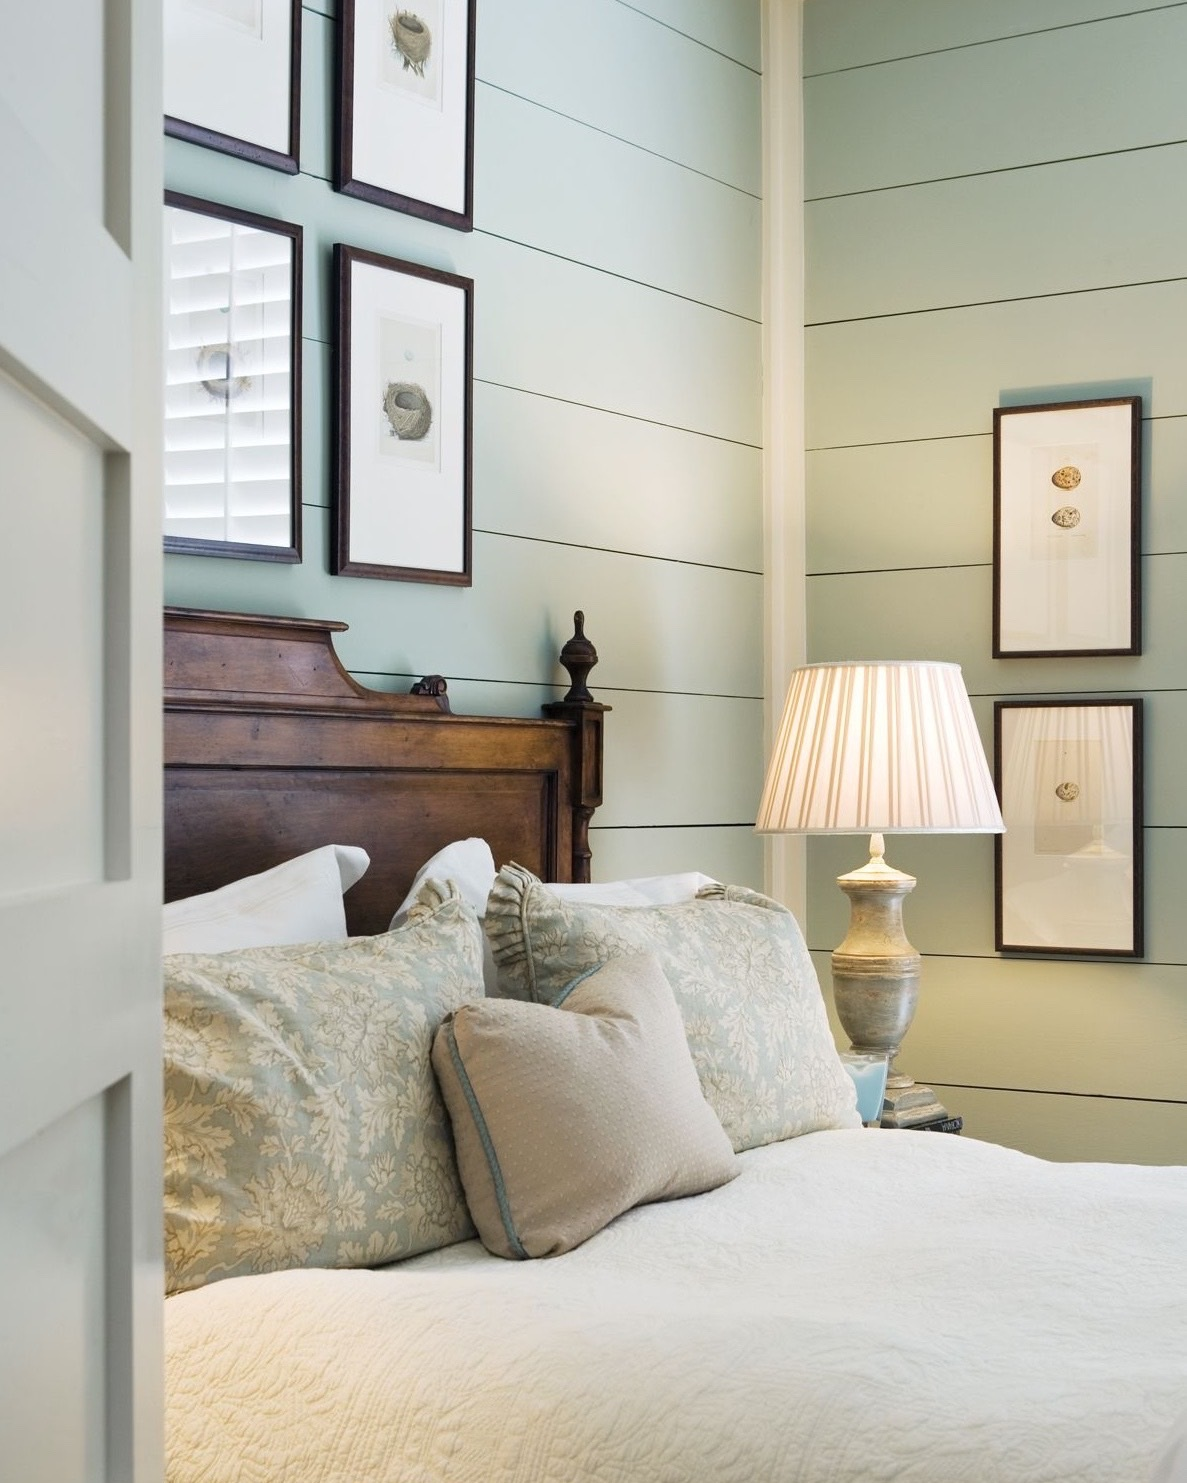 Dorset+Bedroom+With+Shiplap+Walls.jpg